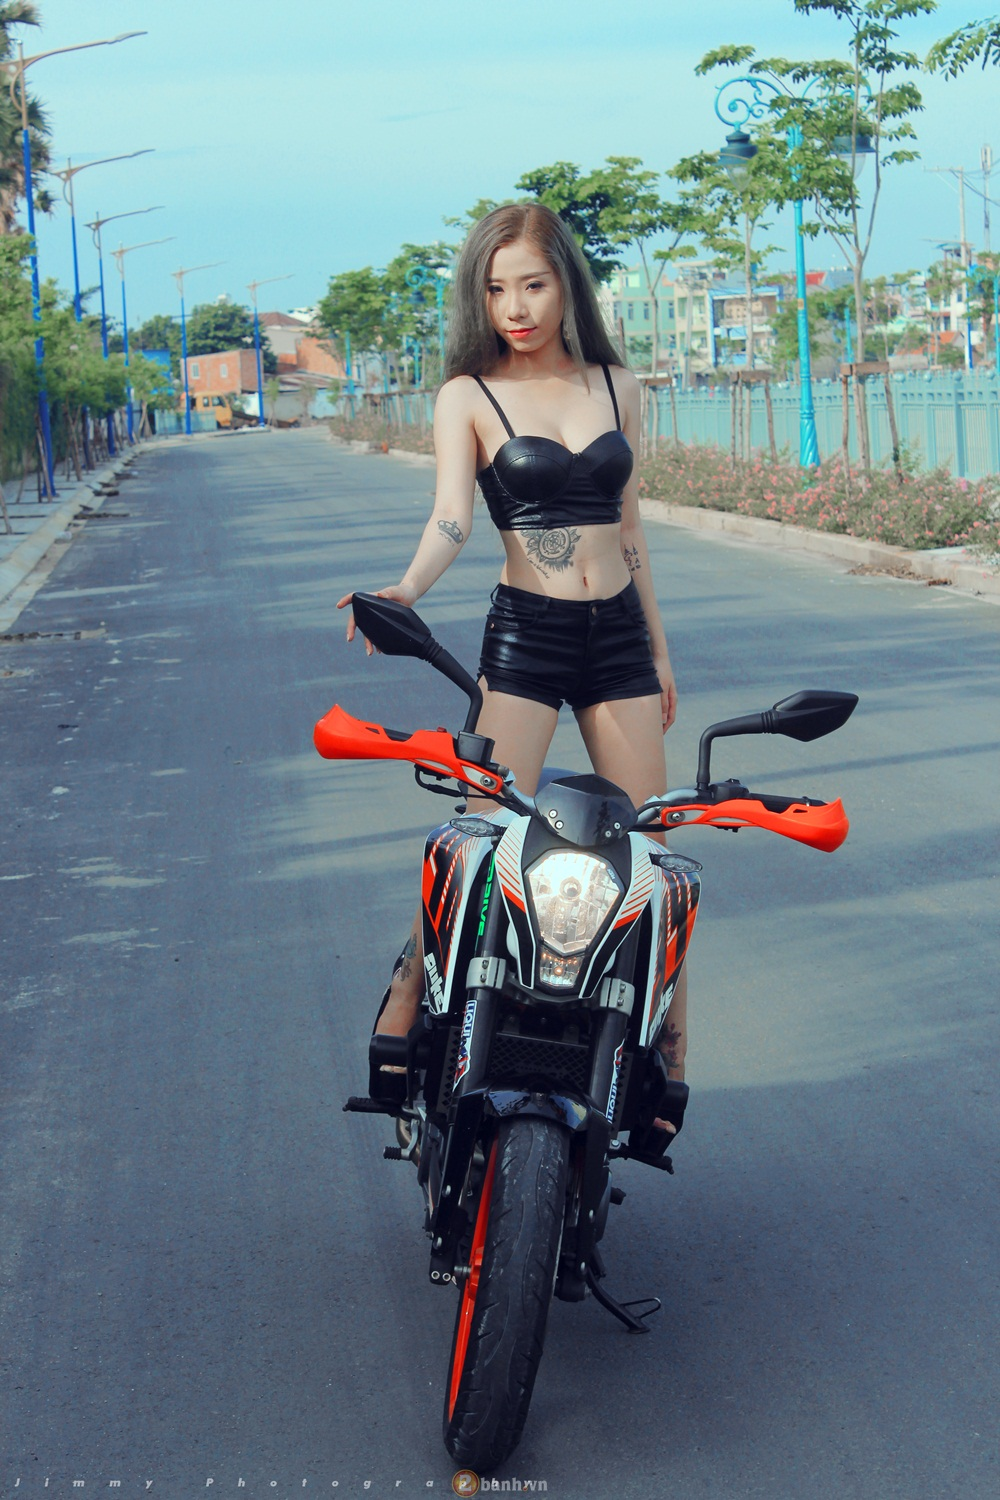 KTM Duke 390 tu tin do dang cung hot girl - 9